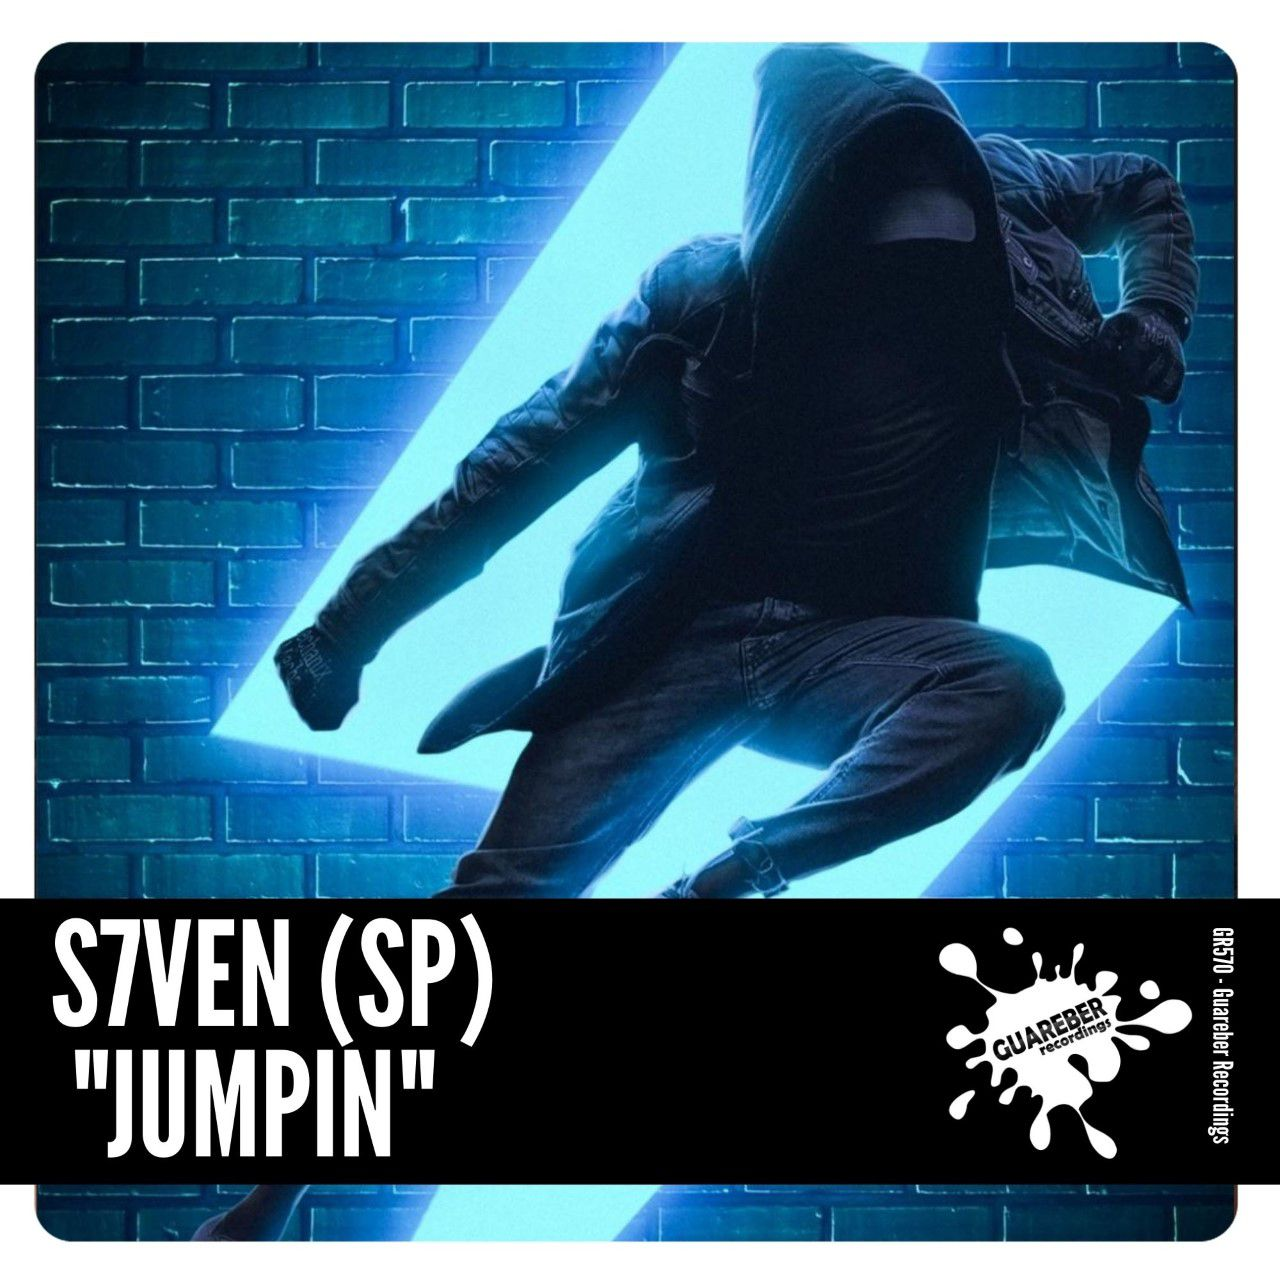 GR570 S7VEN (SP) - Jumpin (Summer Mix)